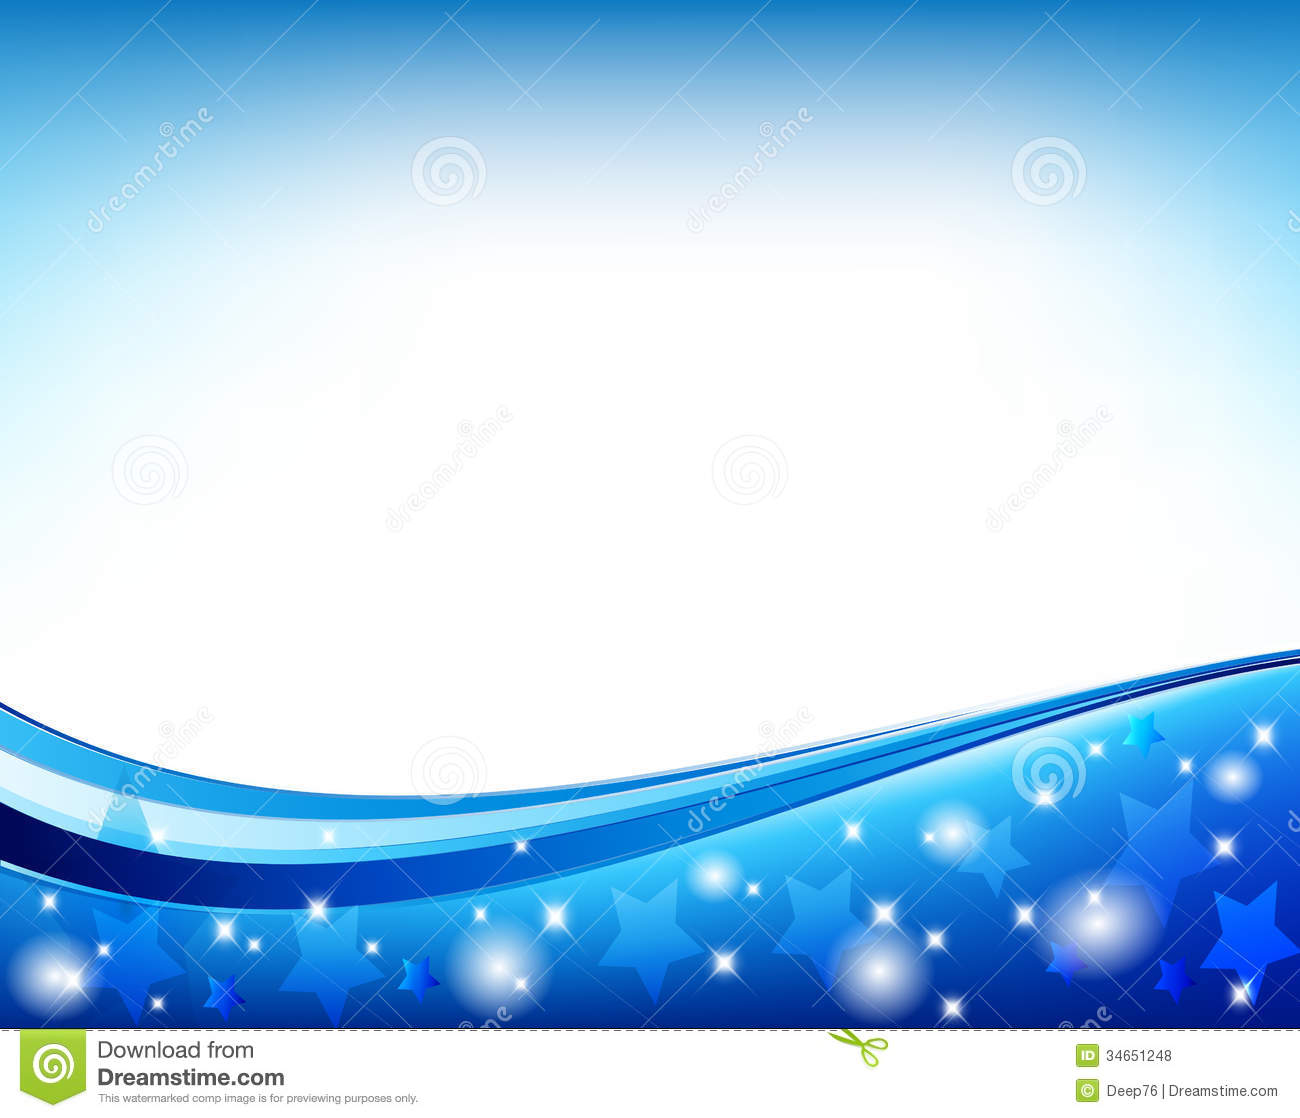 Blue Abstract Backround Royalty Free Stock Photos - Image: 34651248